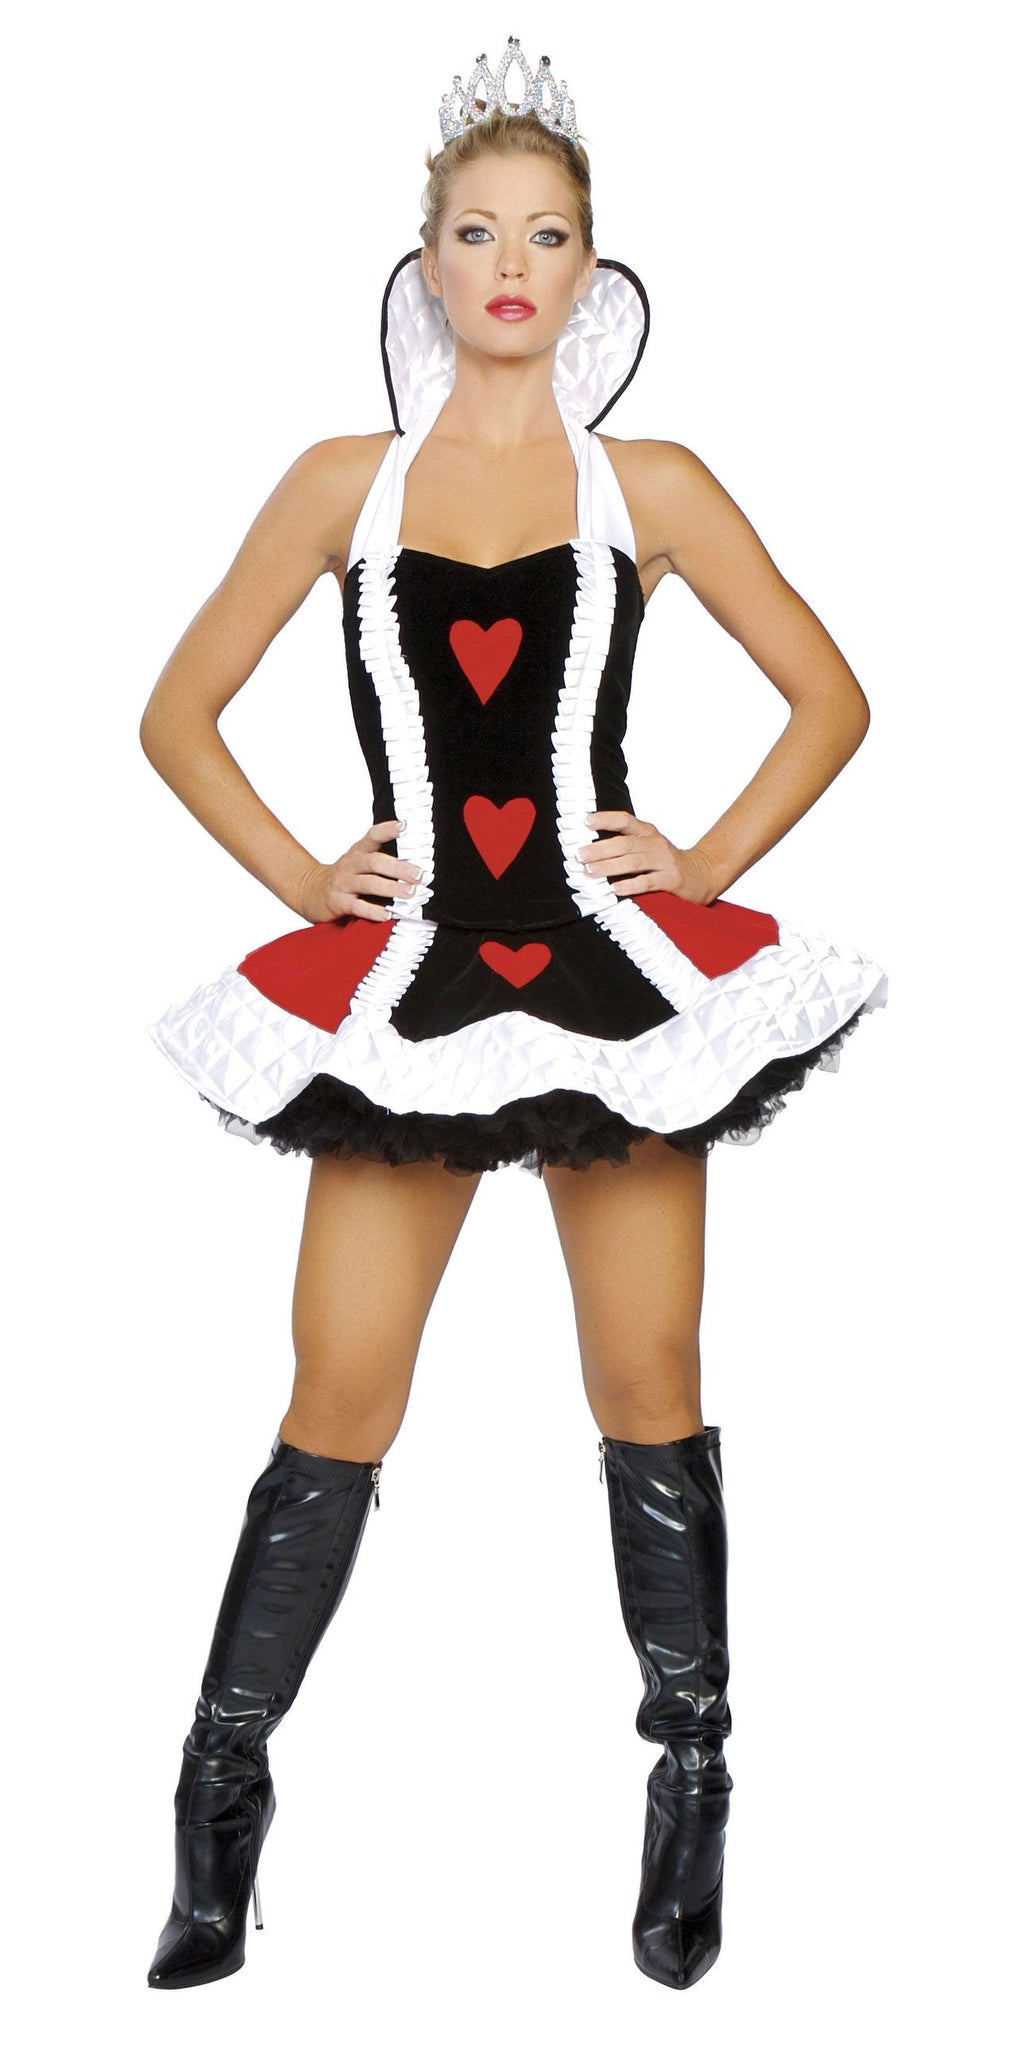 3-Piece-Alice-in-Wonderland-Queen-of-Hearts-Peplum-Dress-Costume